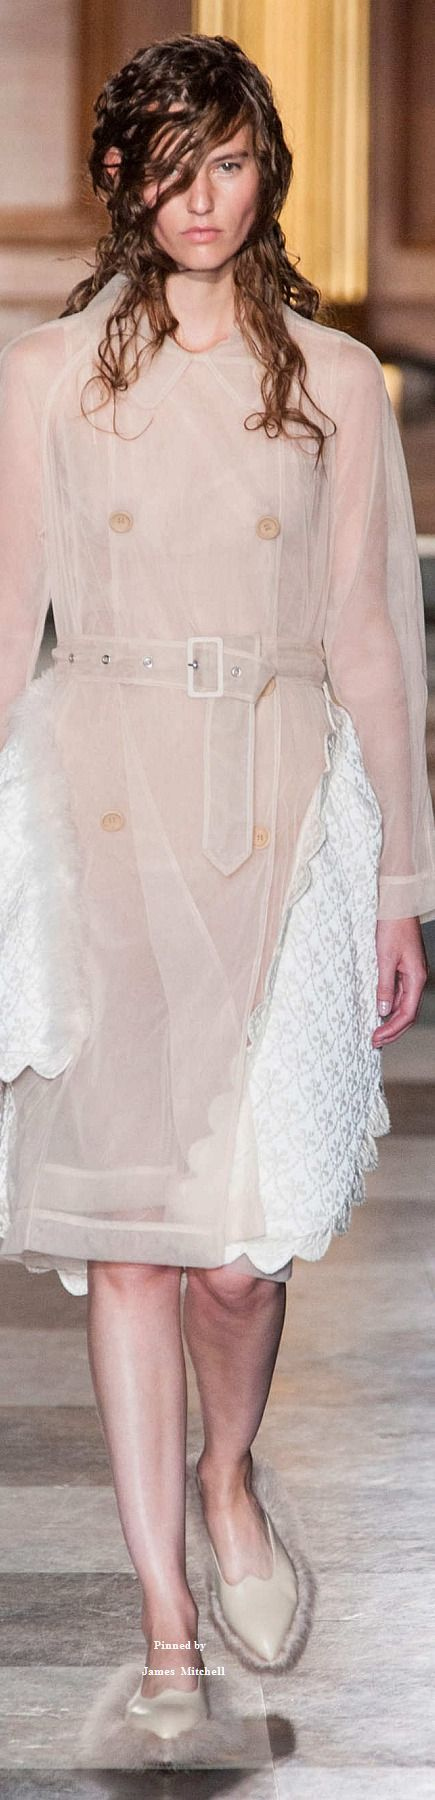 118 best Simone Rocha CollectionS images on Pinterest ...